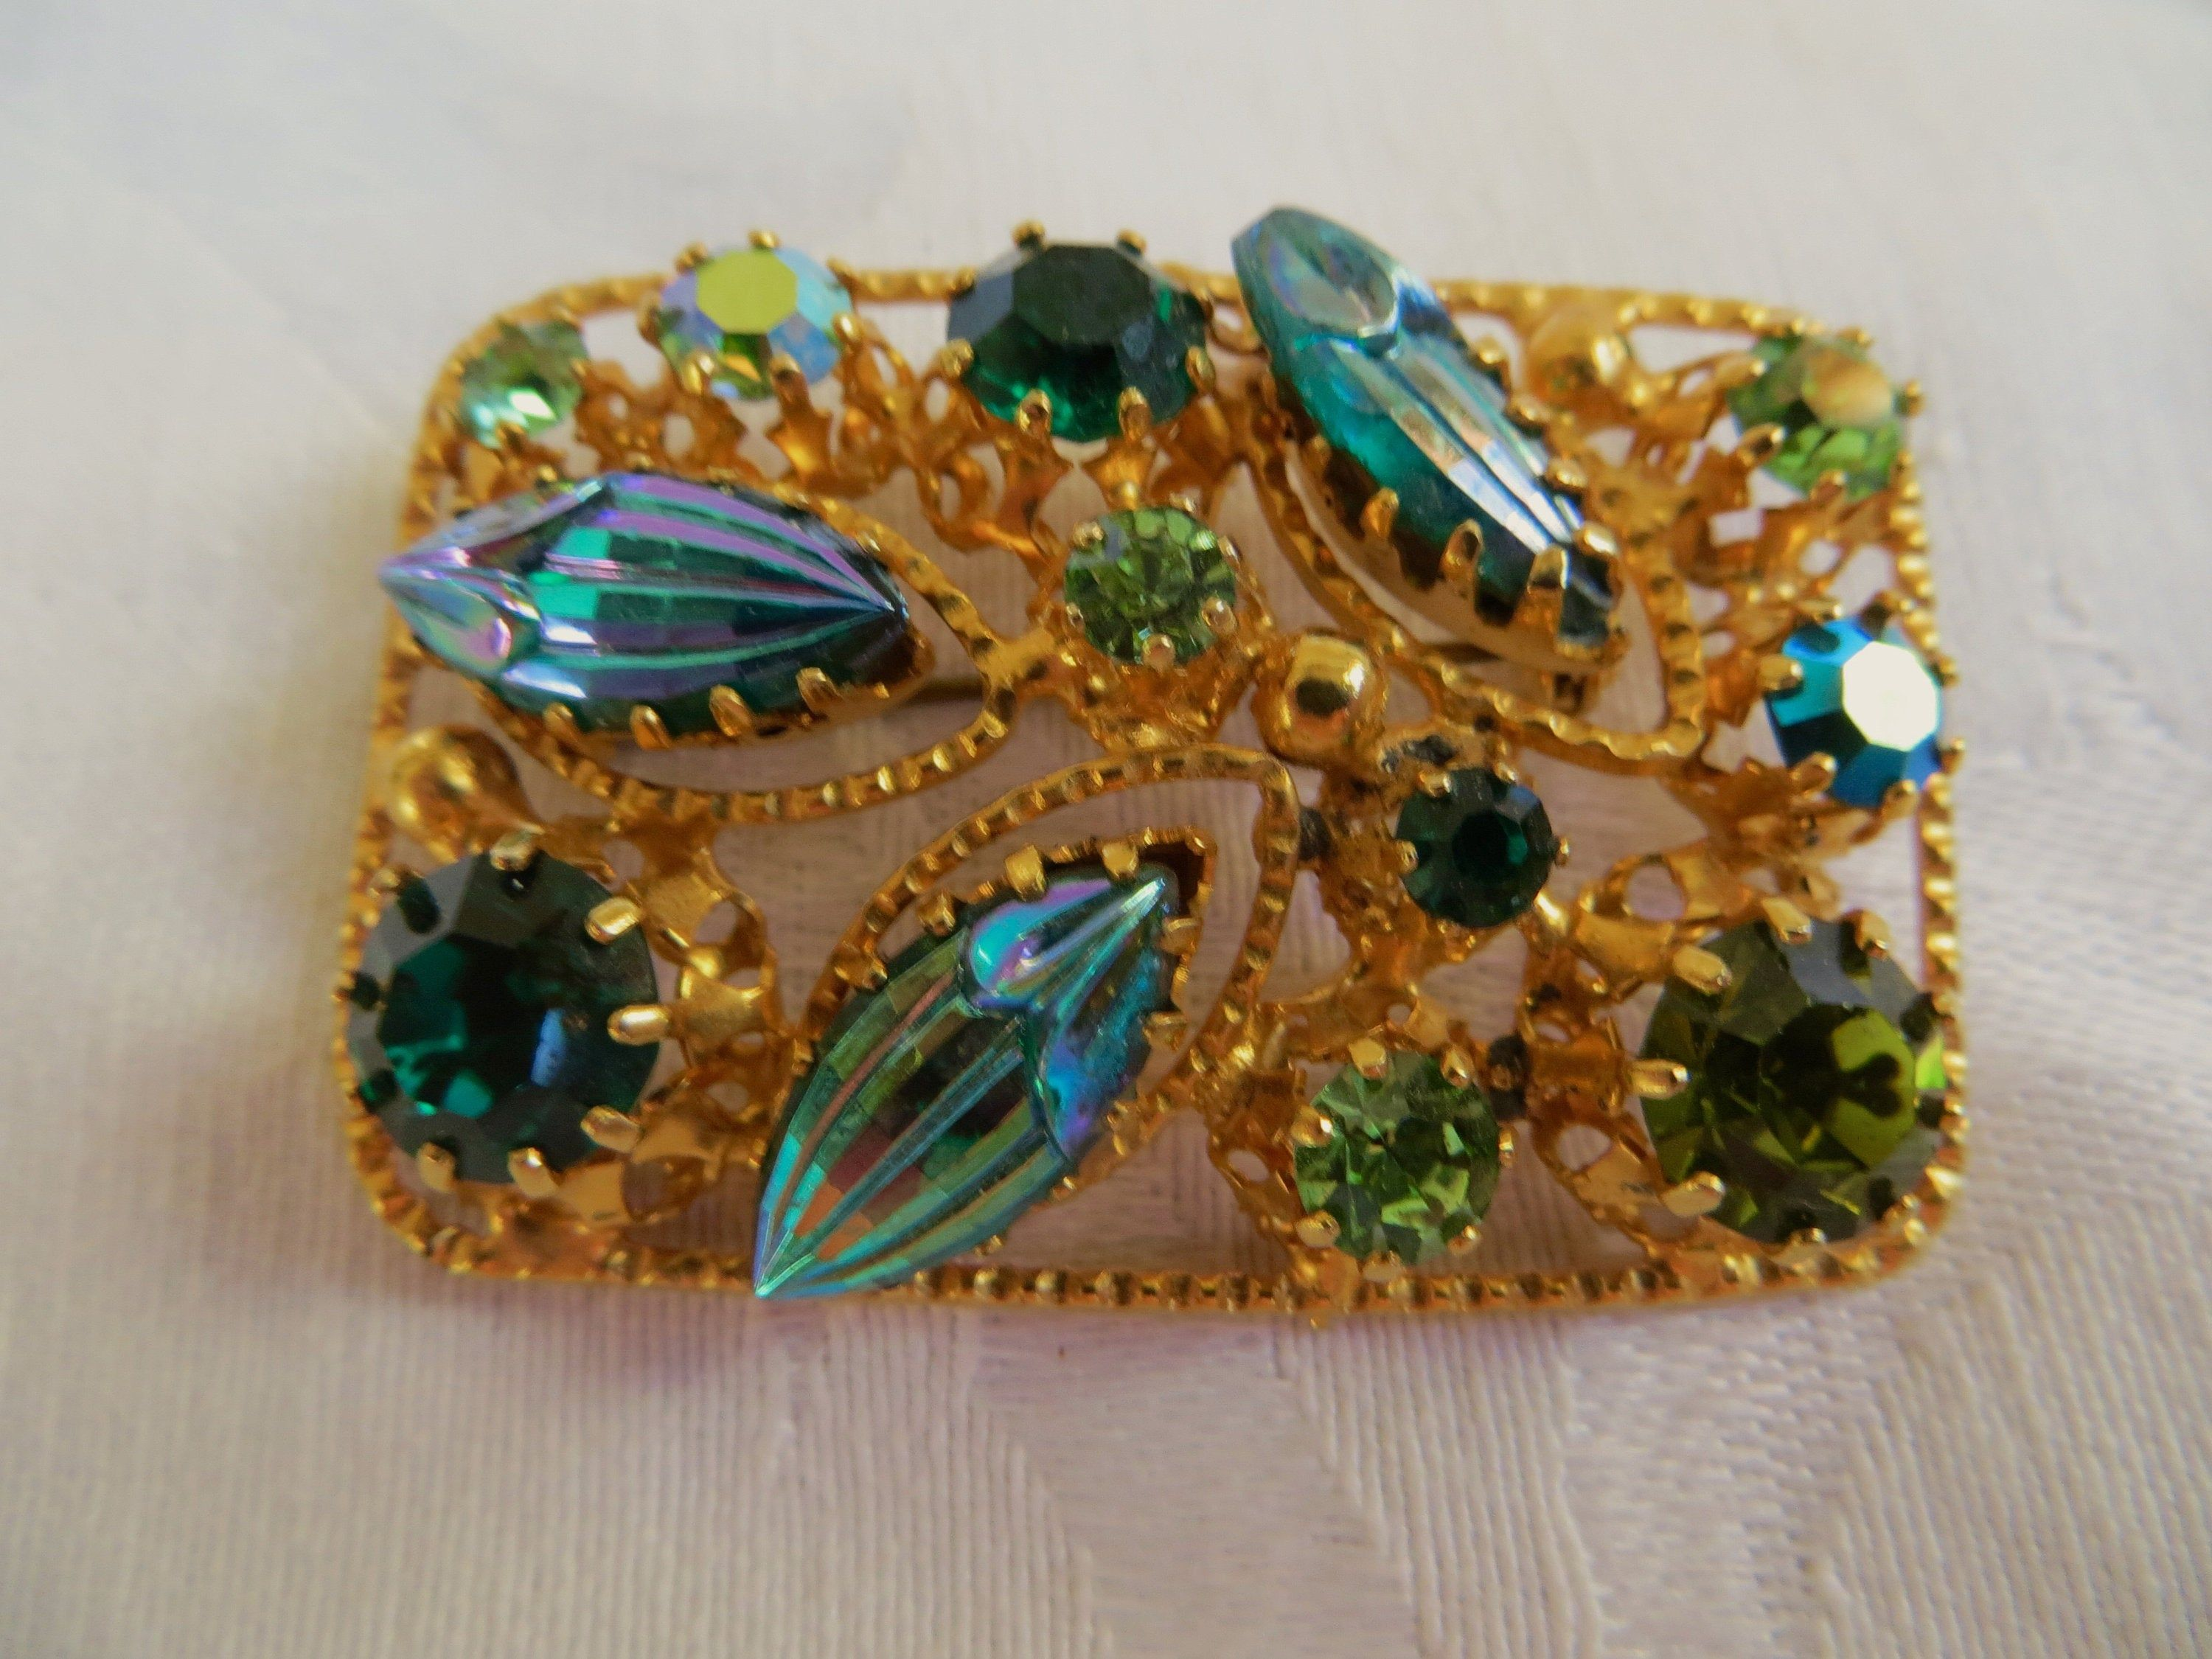 Trio of Very Small Brooches Pins Glass Stones Faux Pearls